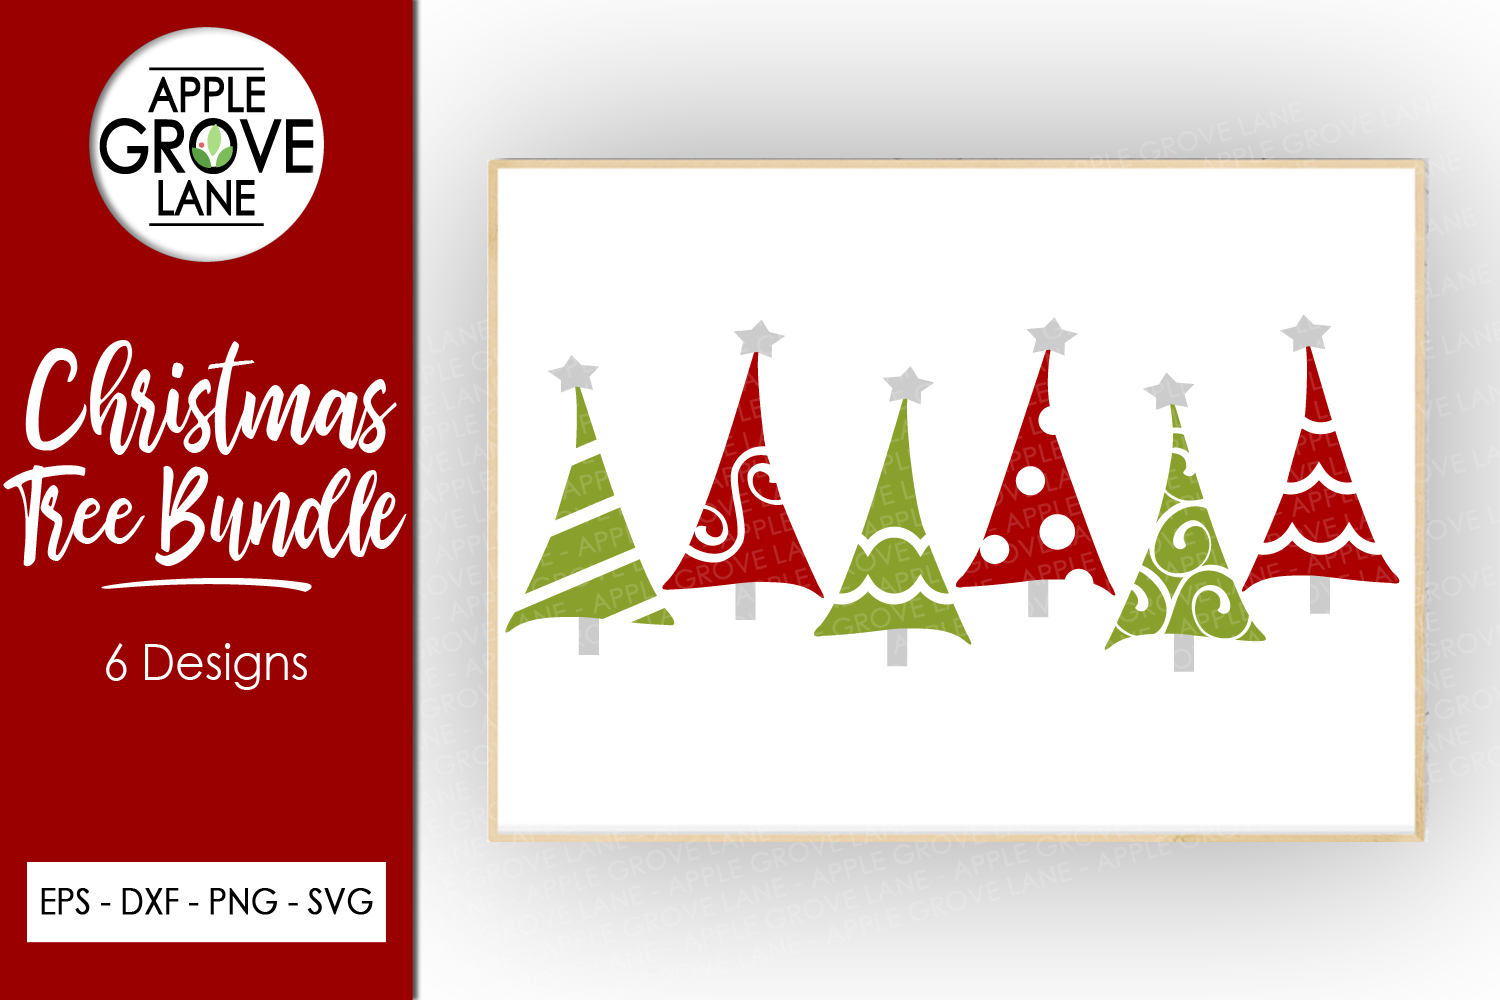 Christmas Tree Svg Bundle - 6 designs included - Svg File example image 1